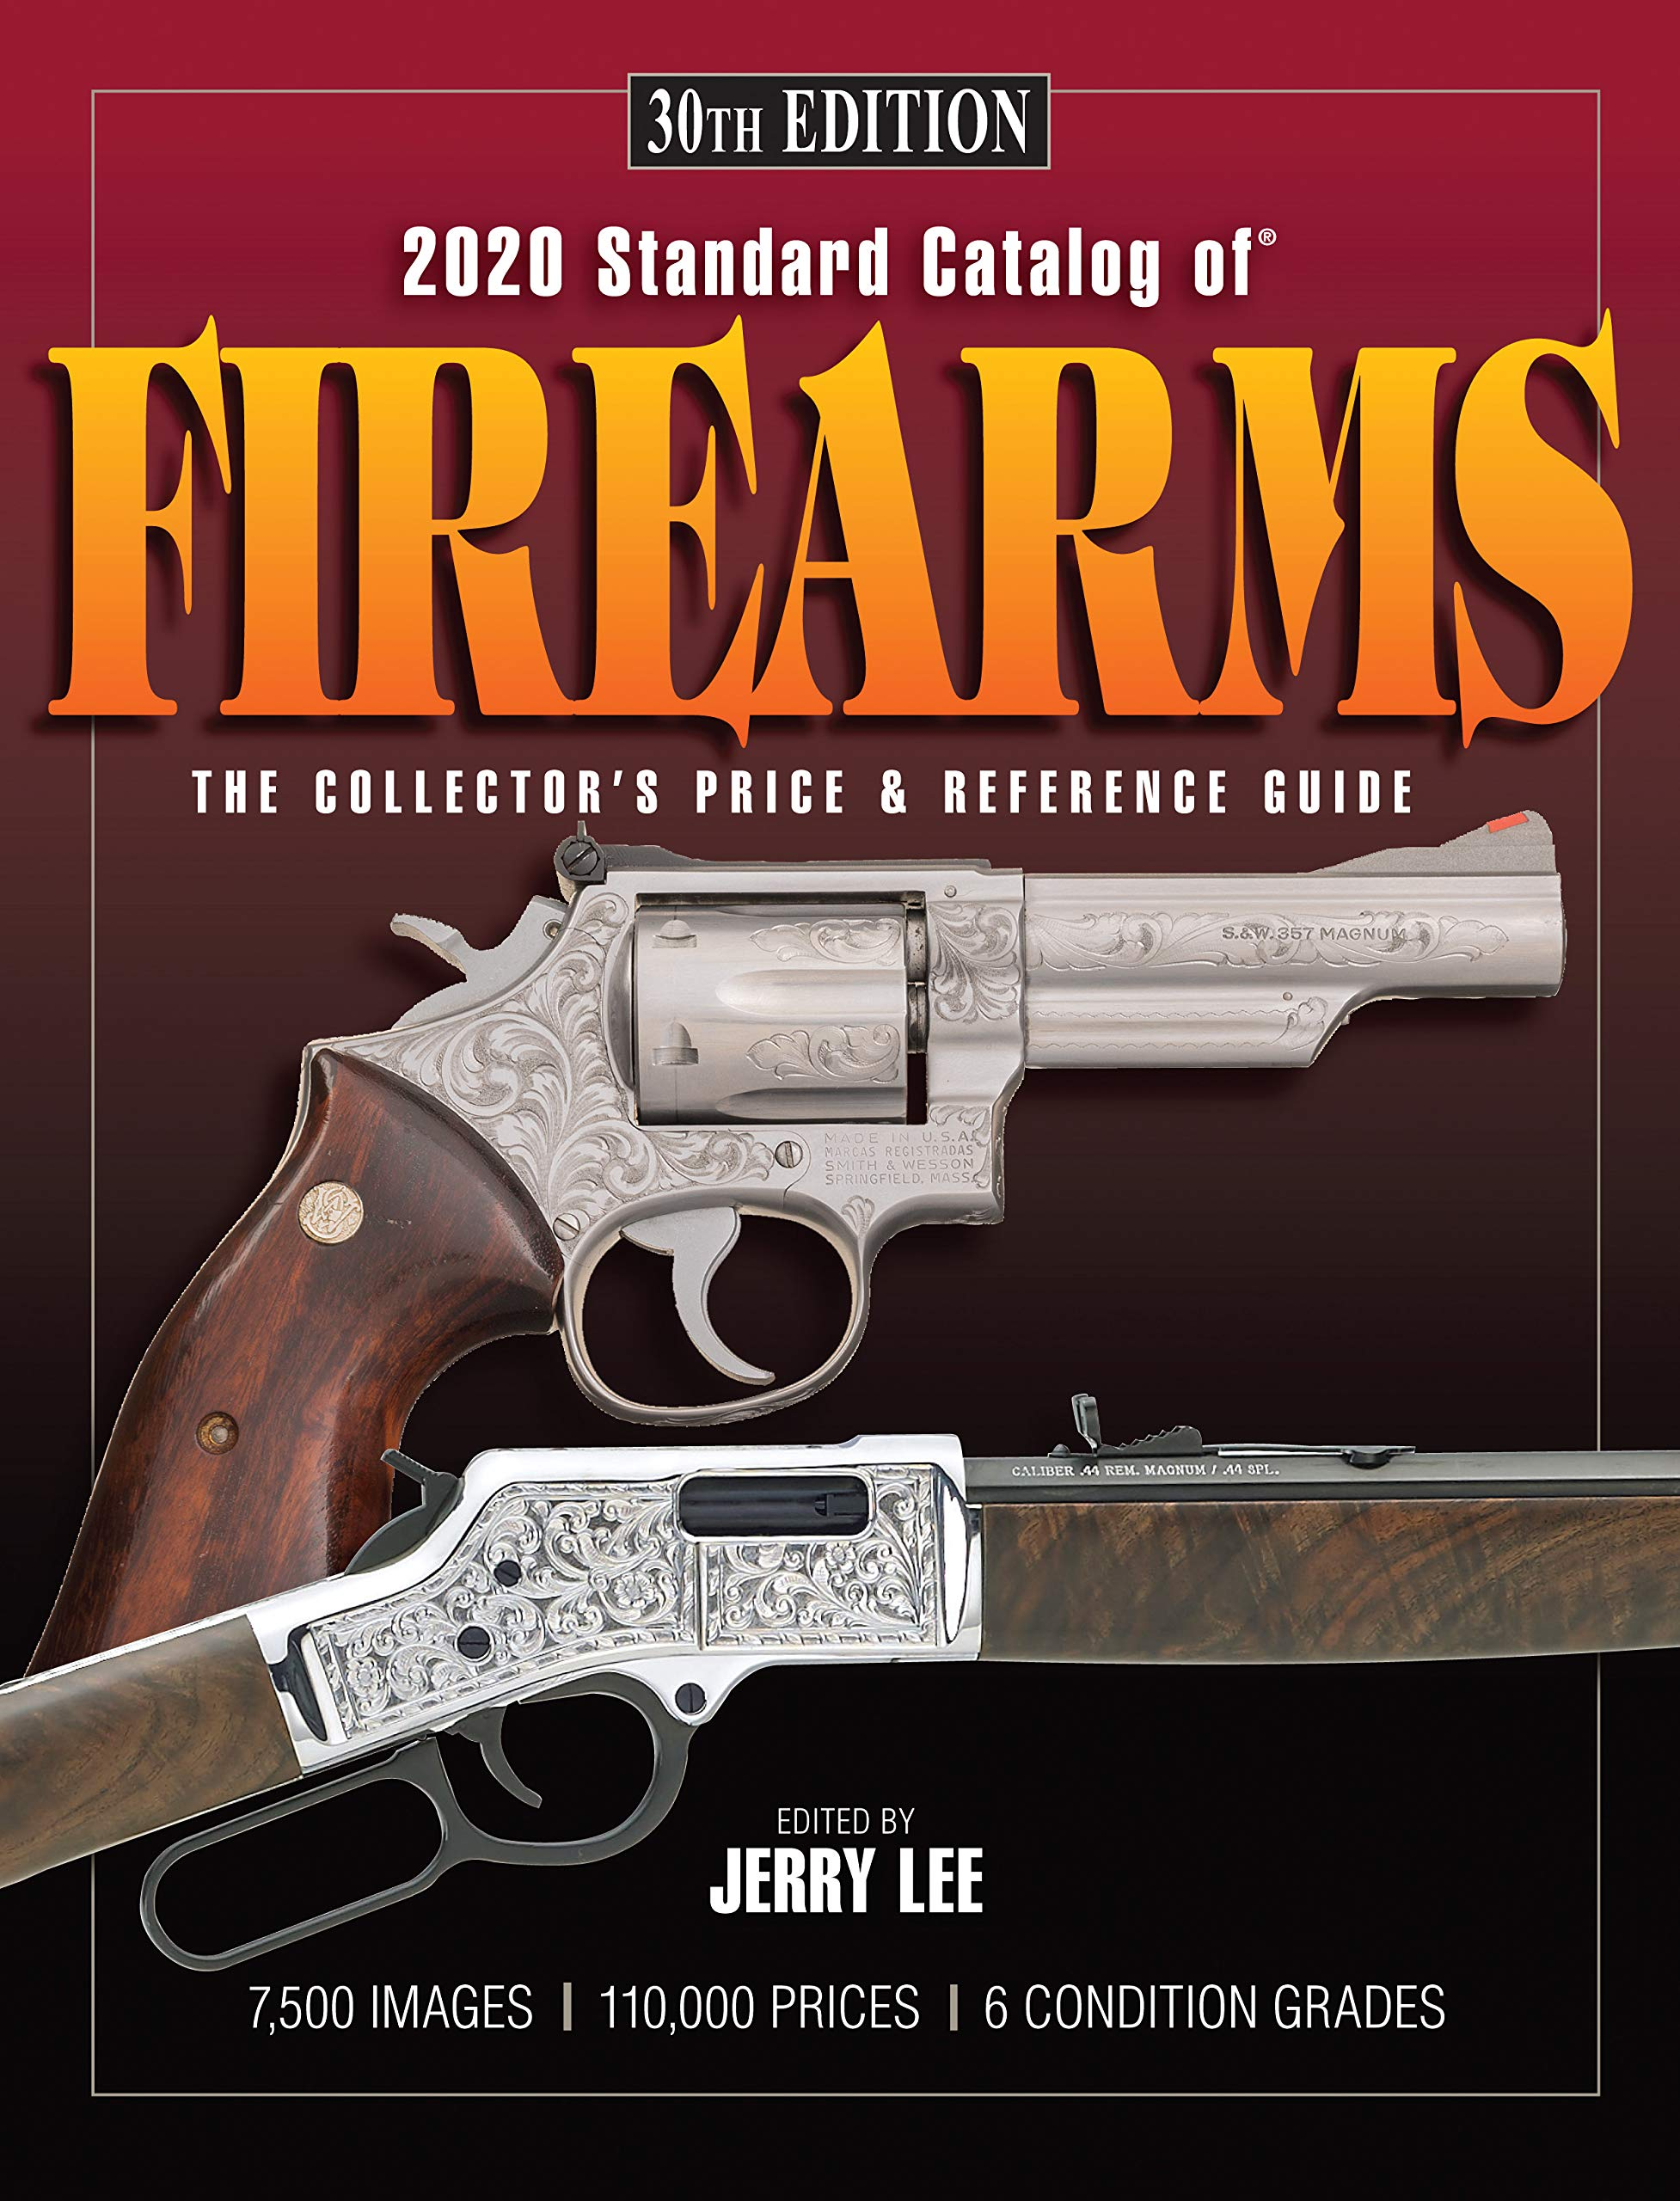 2020 Standard Catalog of Firearms: Jerry Lee: 9781946267917